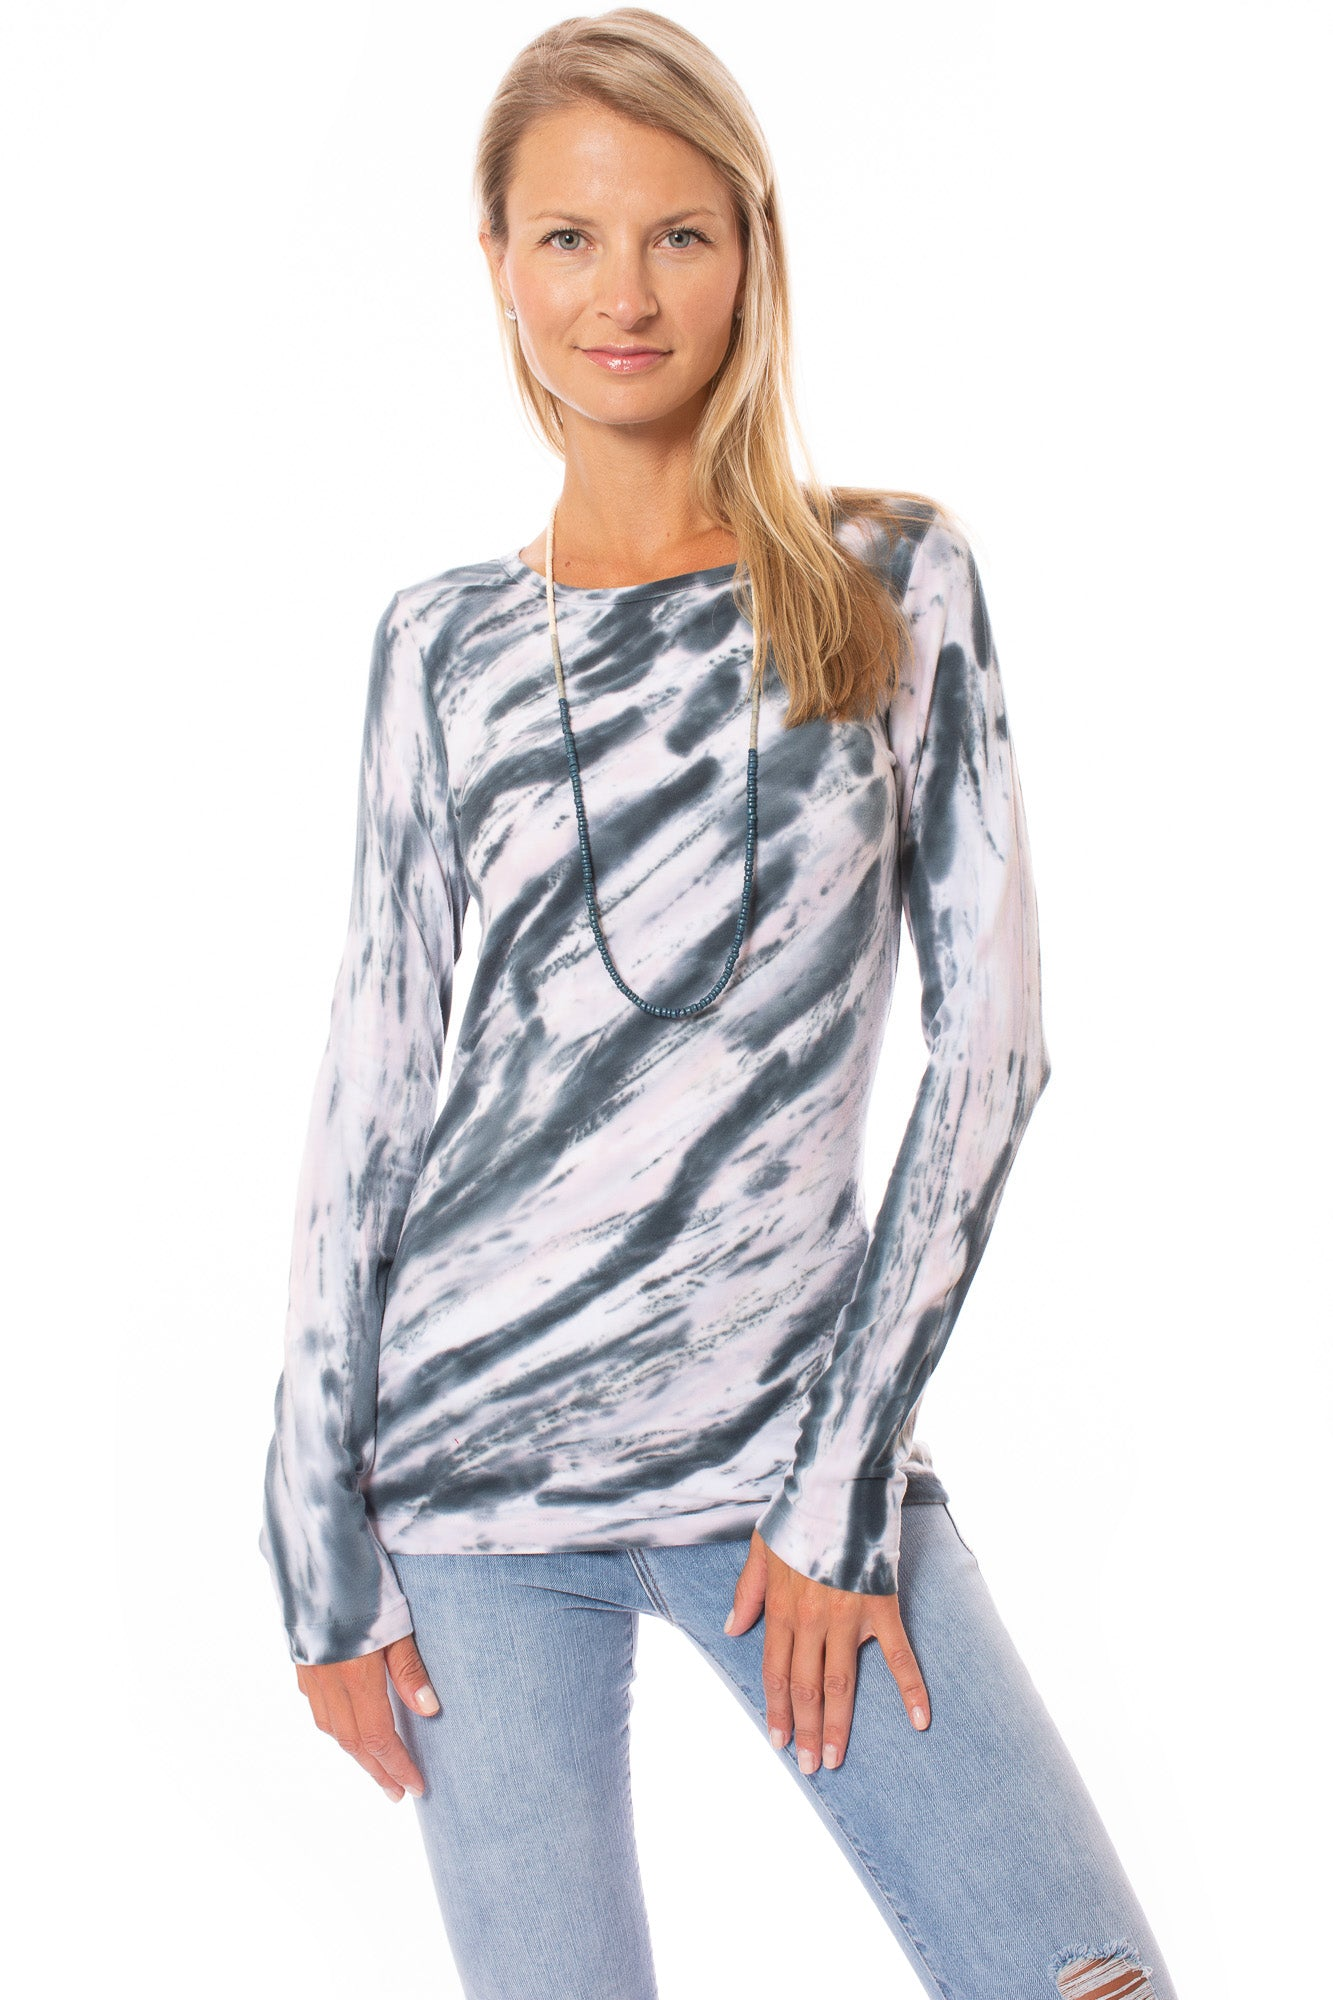 Hard Tail Forever - Long Skinny Sexy Tee (SL-69, Tie-Dye DSW1)